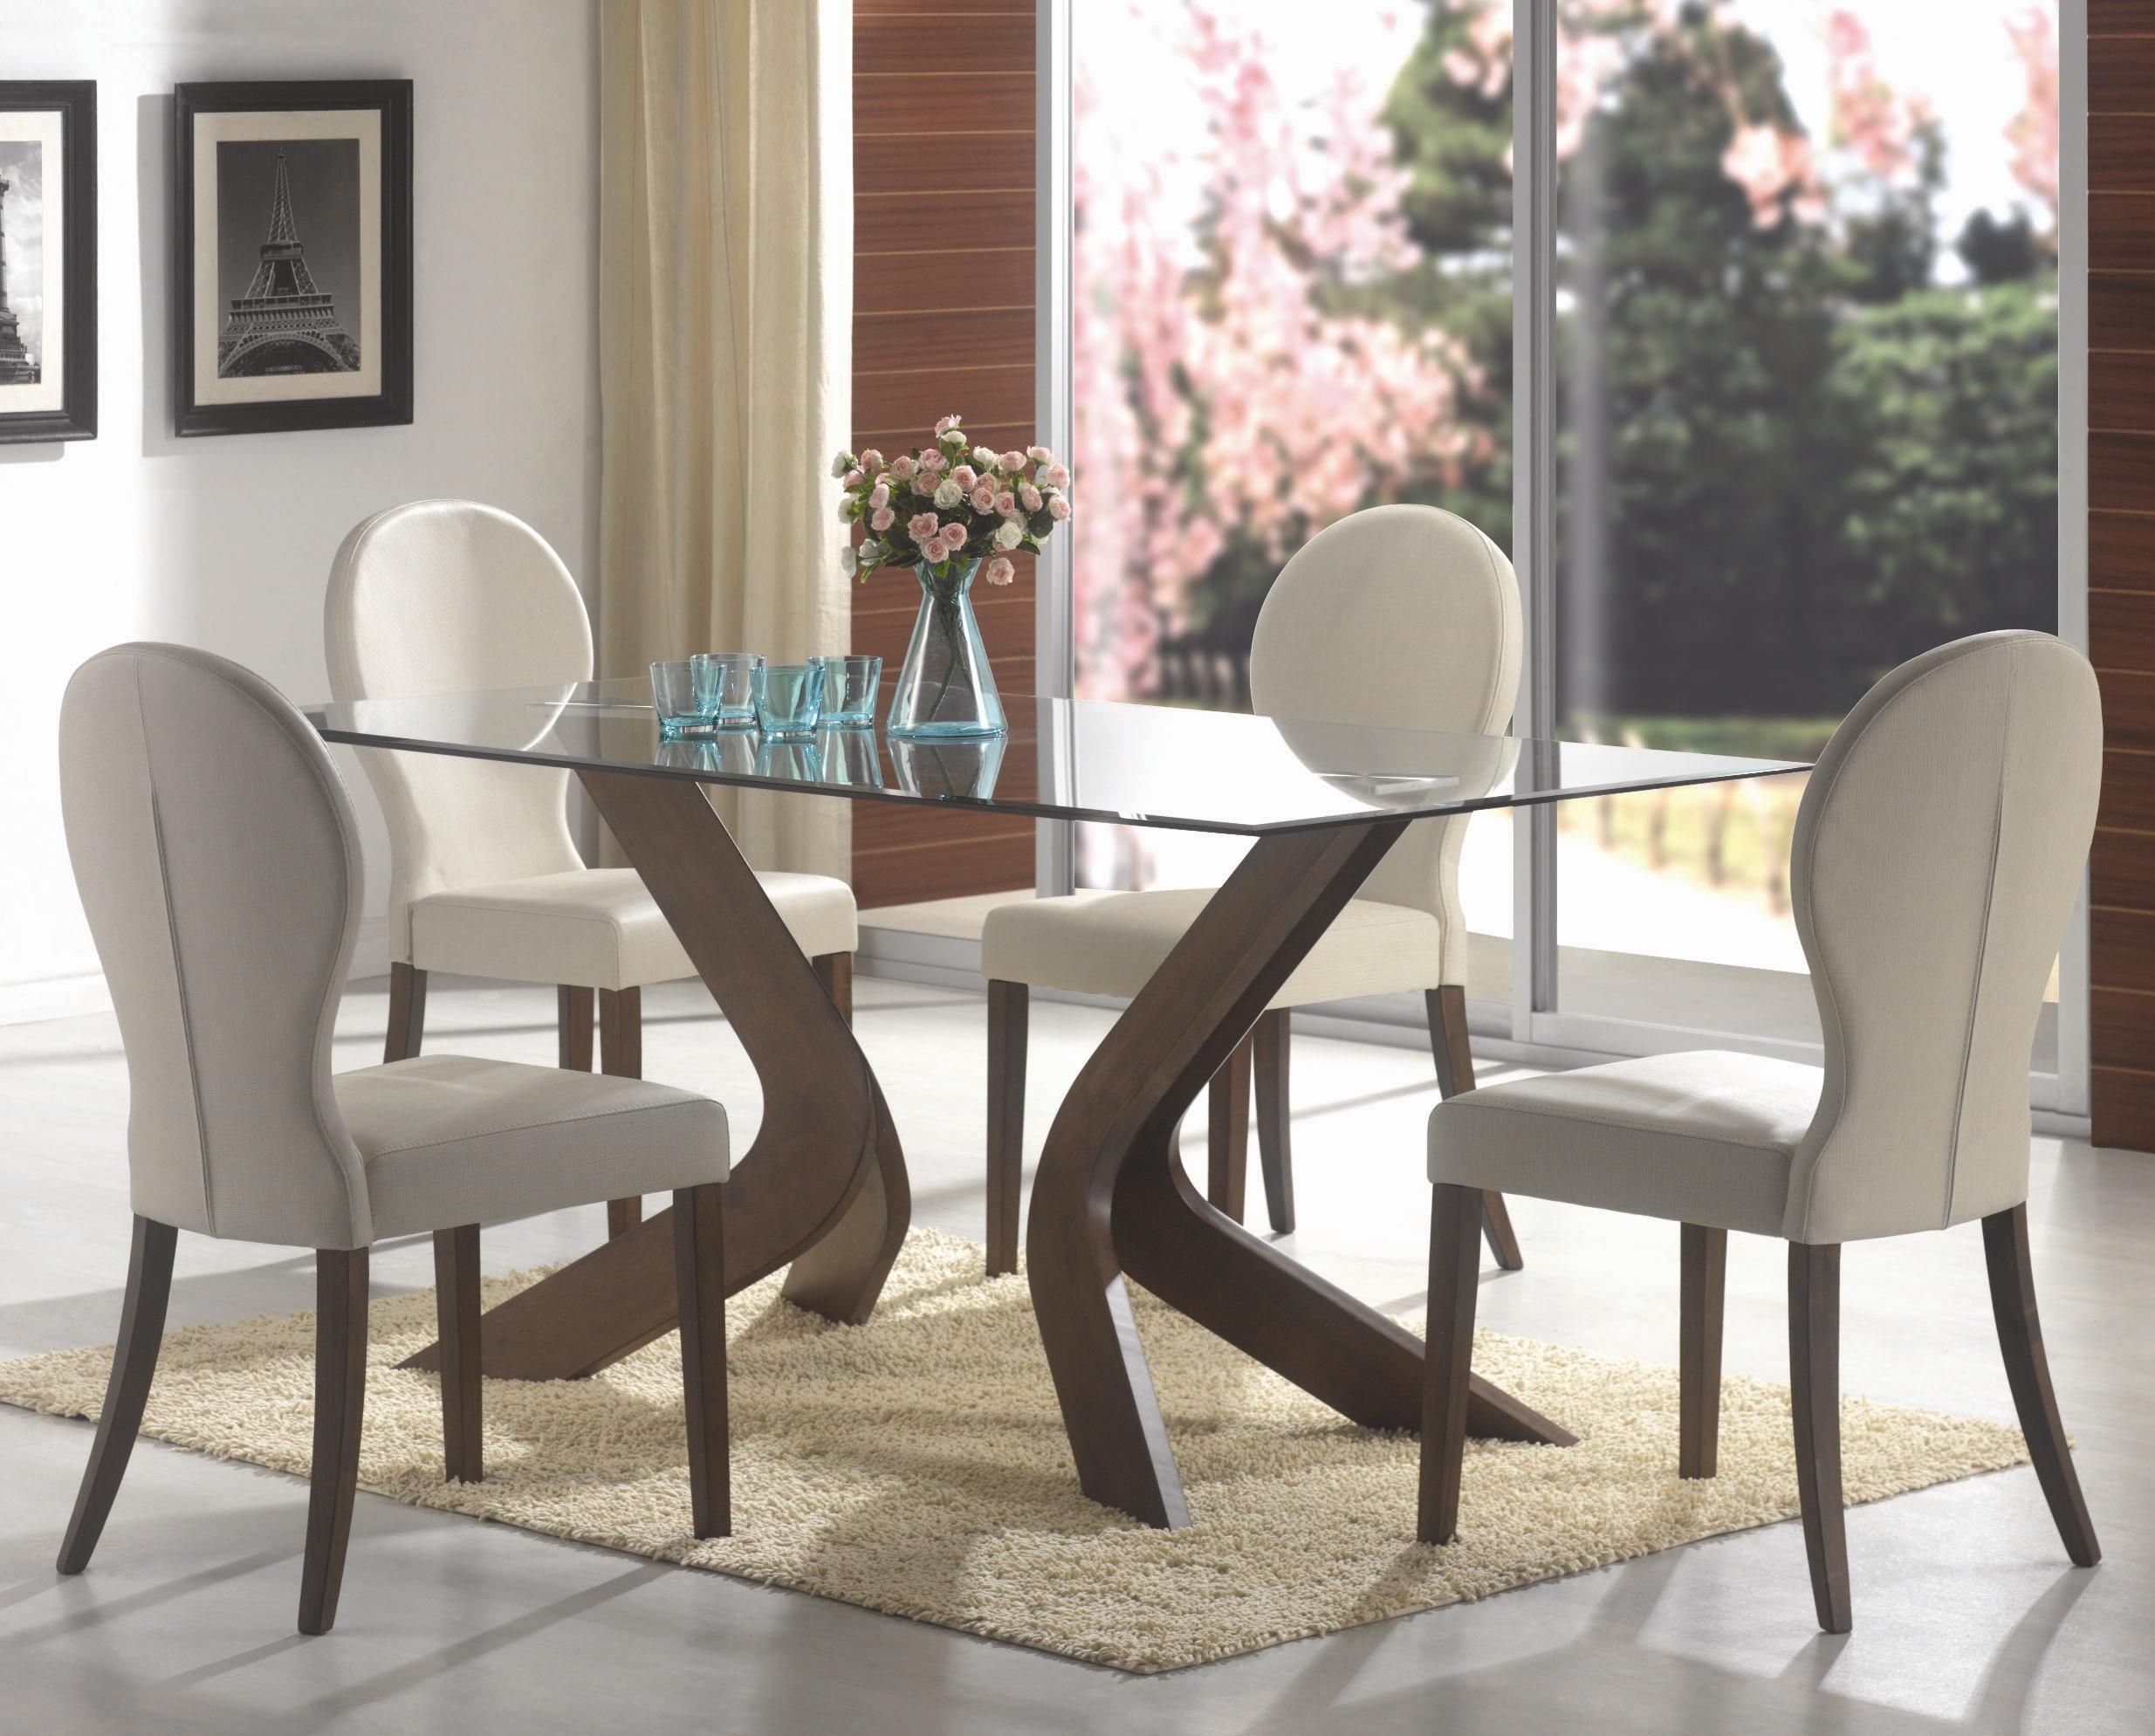 Mesmerizing Glass Round Dining Table For 6 3 Room Furniture Modern